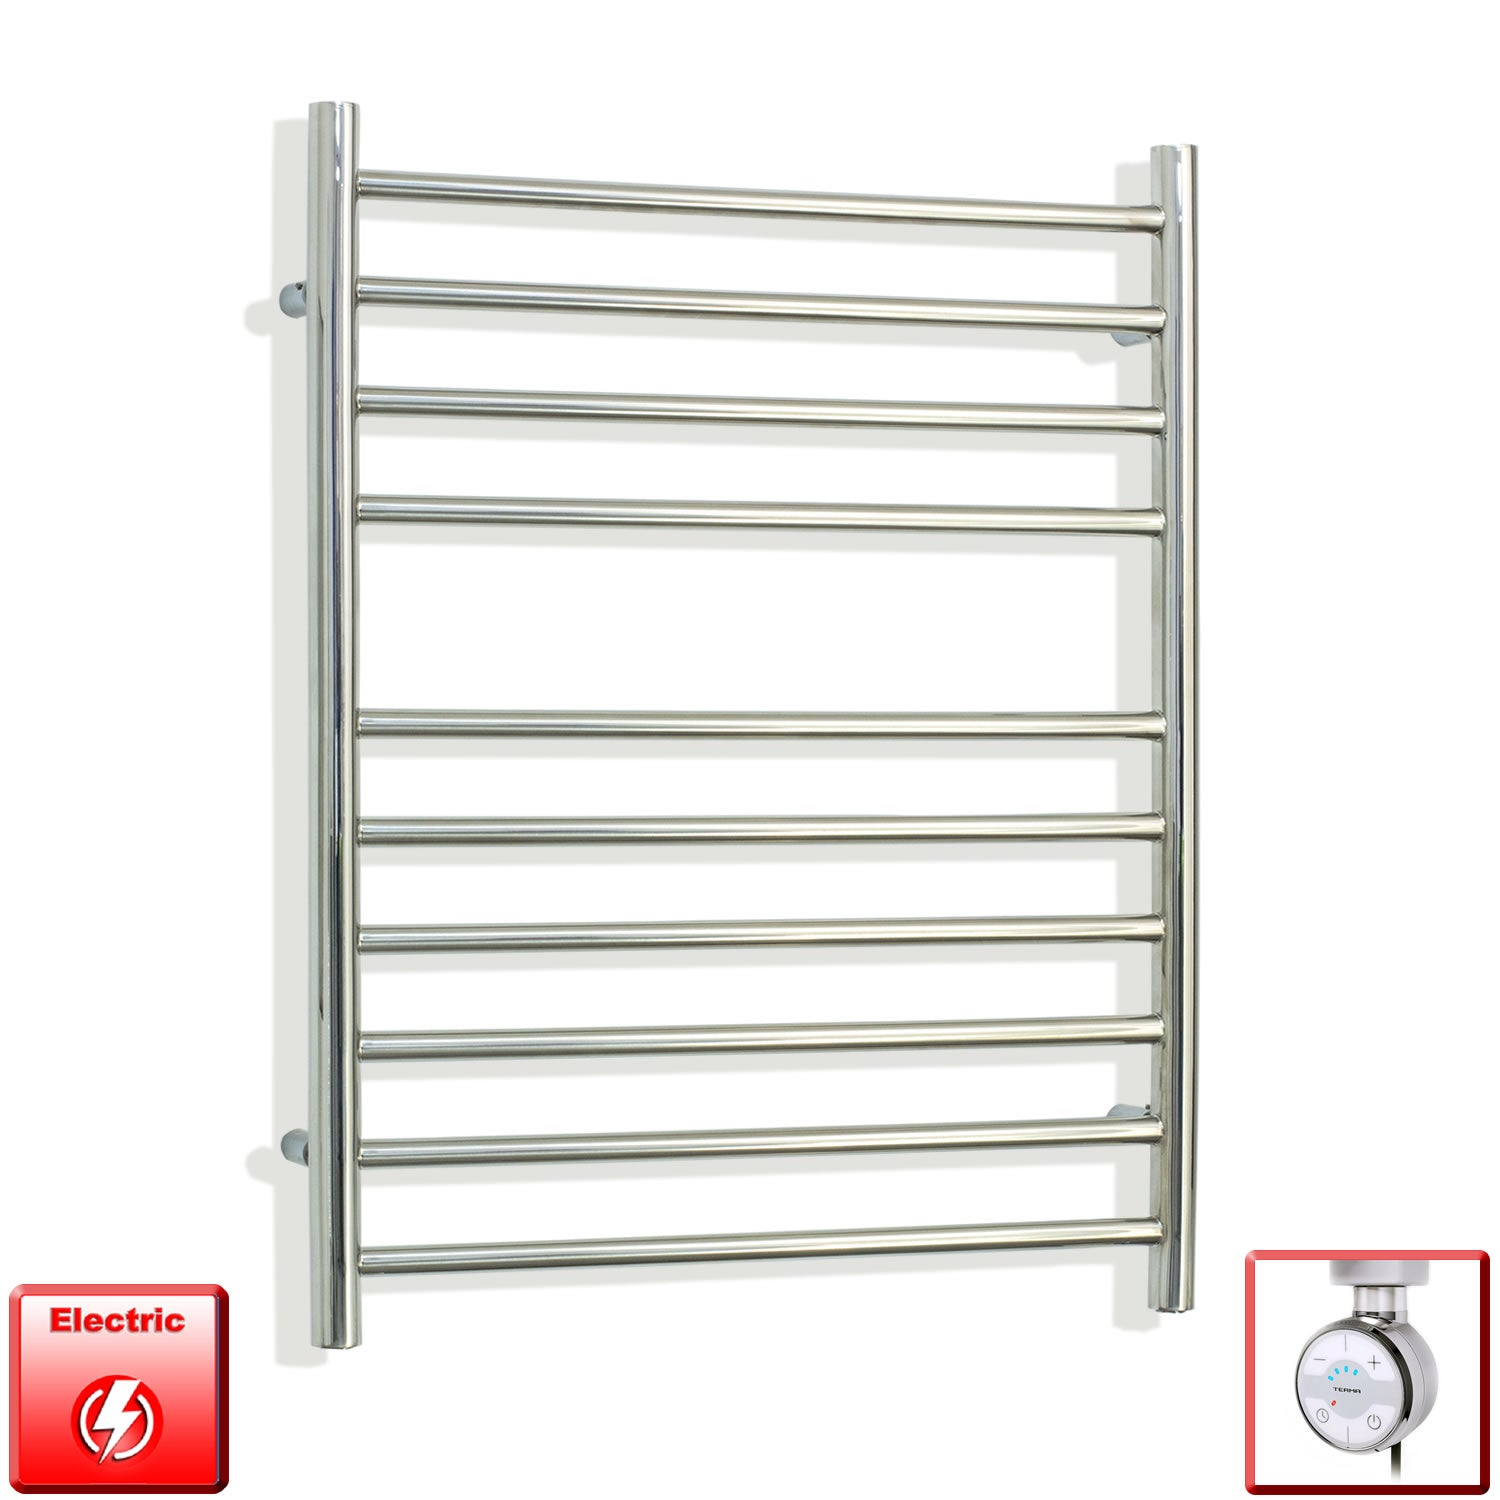 750 mm High 600 mm Wide Pre-Filled Electric Stainless Steel Heated Towel Rail Radiator Moa thermostatic heating element